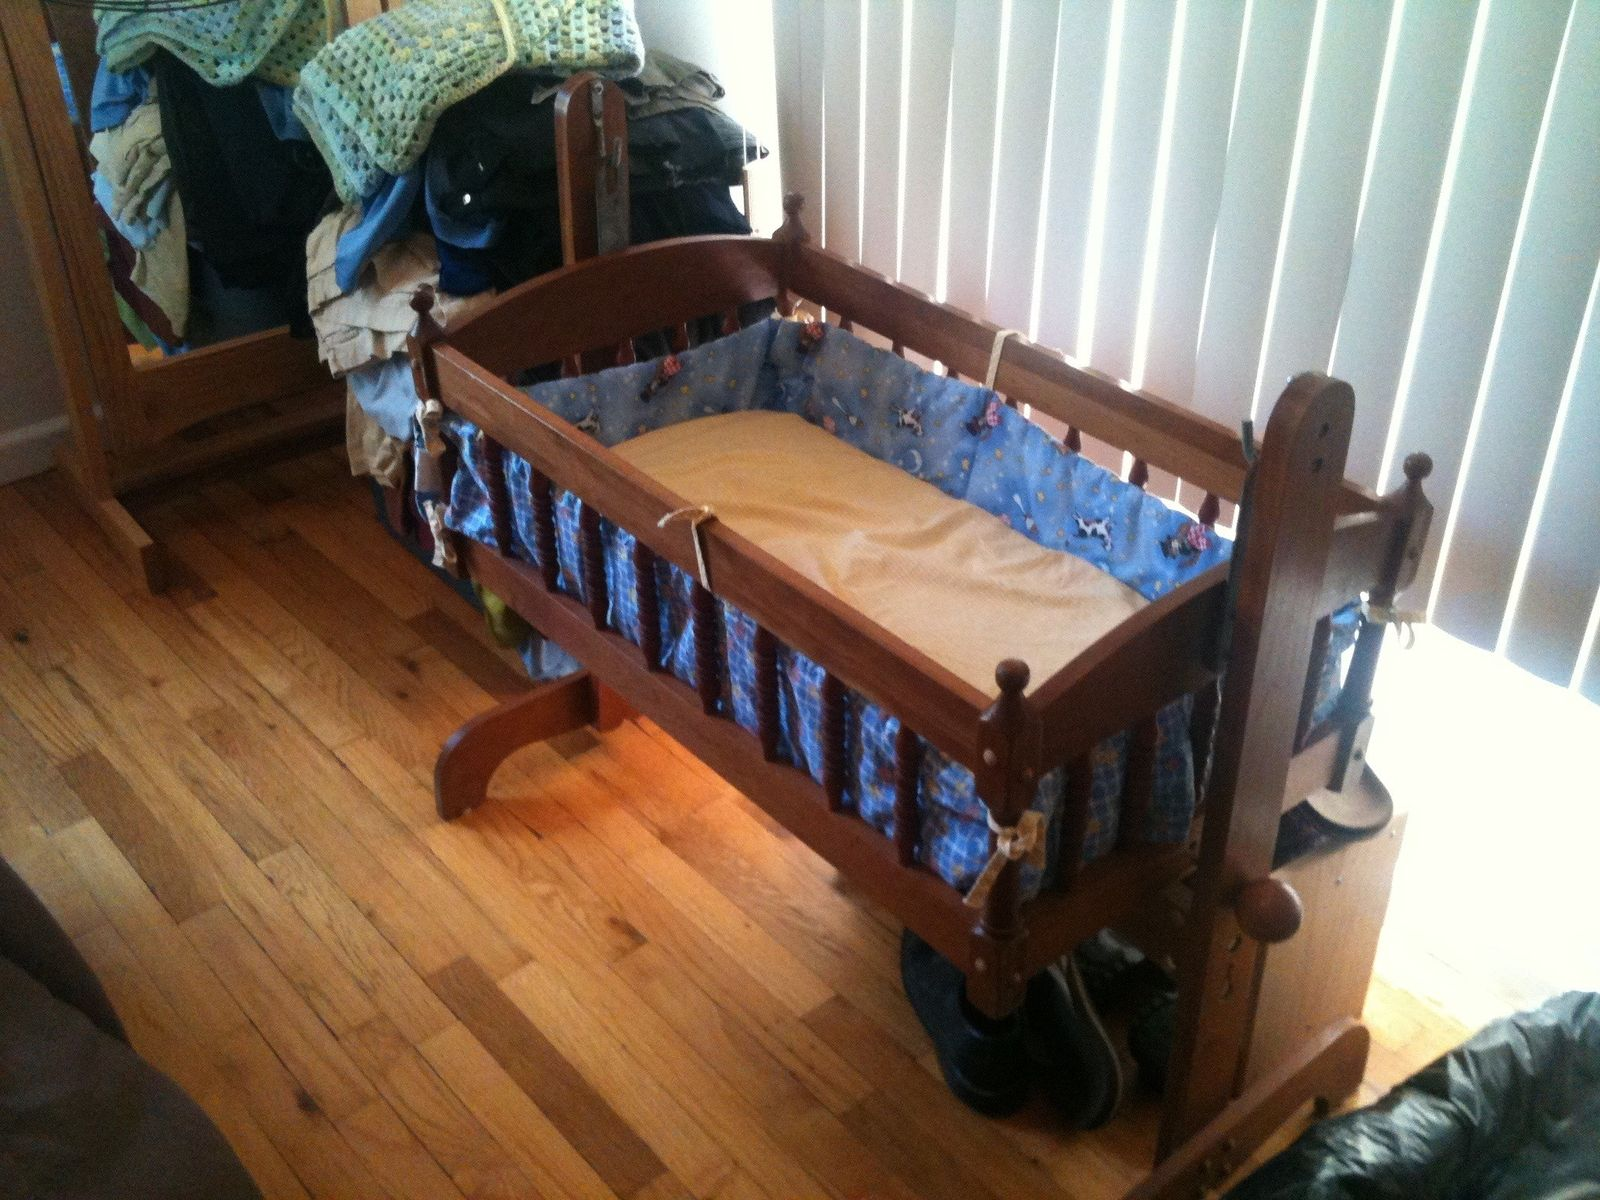 Classic Wooden Baby Cradle Design With Cool Blue Bedding Decorating Inspirations And Soft Beige Baby Mattress Acces Baby Cradle Wooden Baby Cradle Blue Bedding